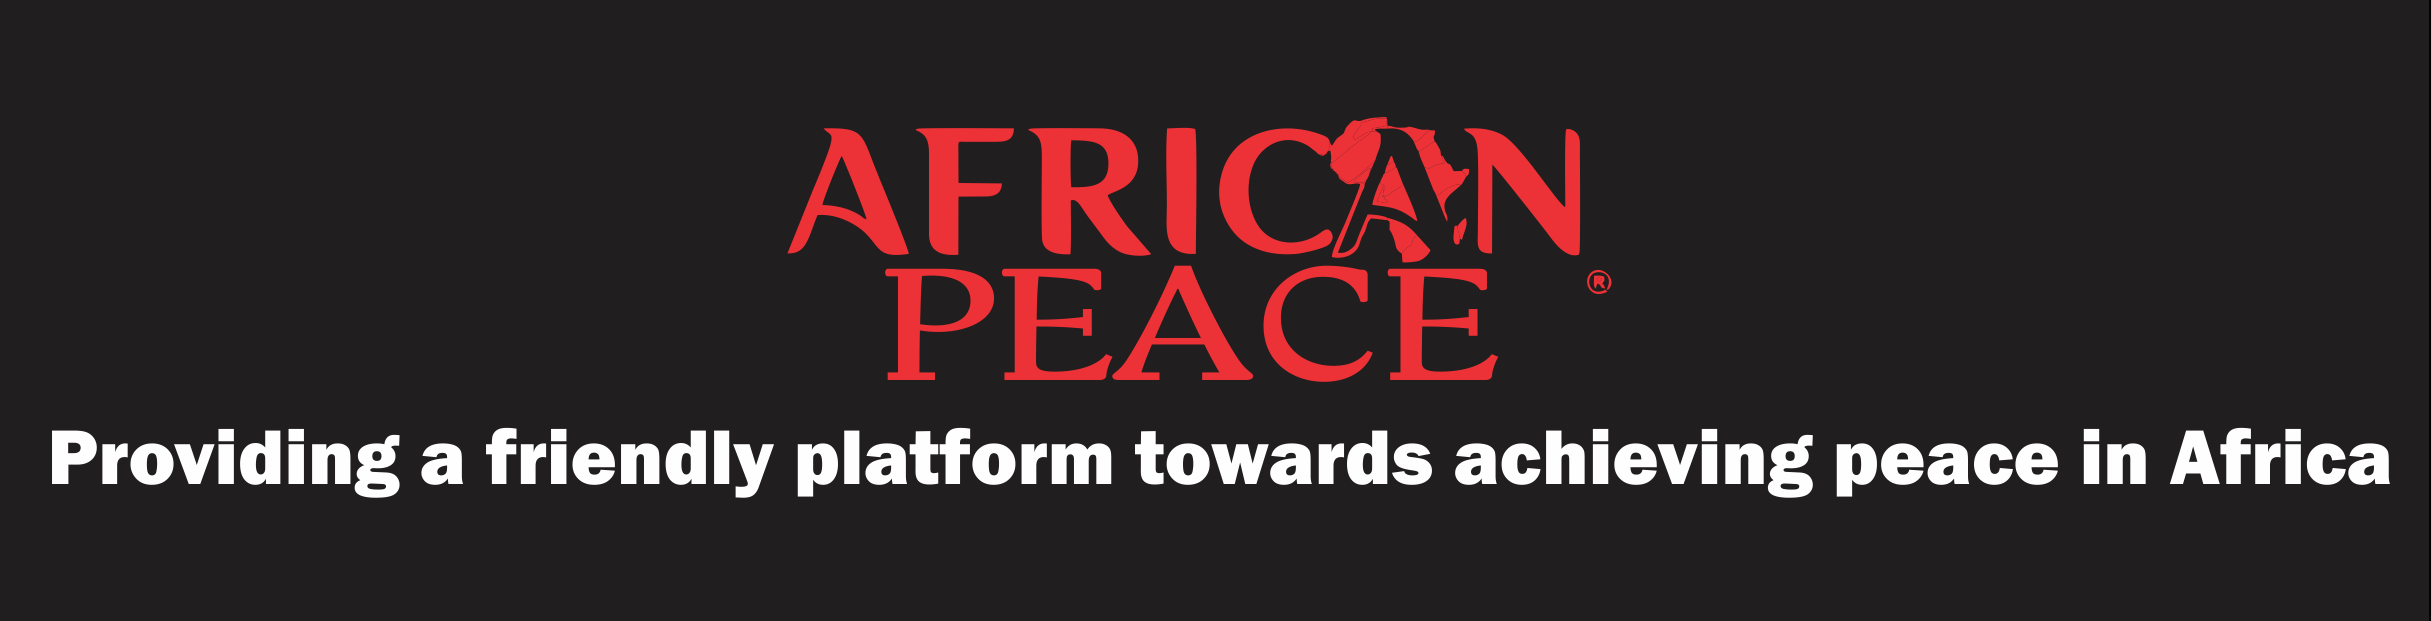 African Peace Magazine